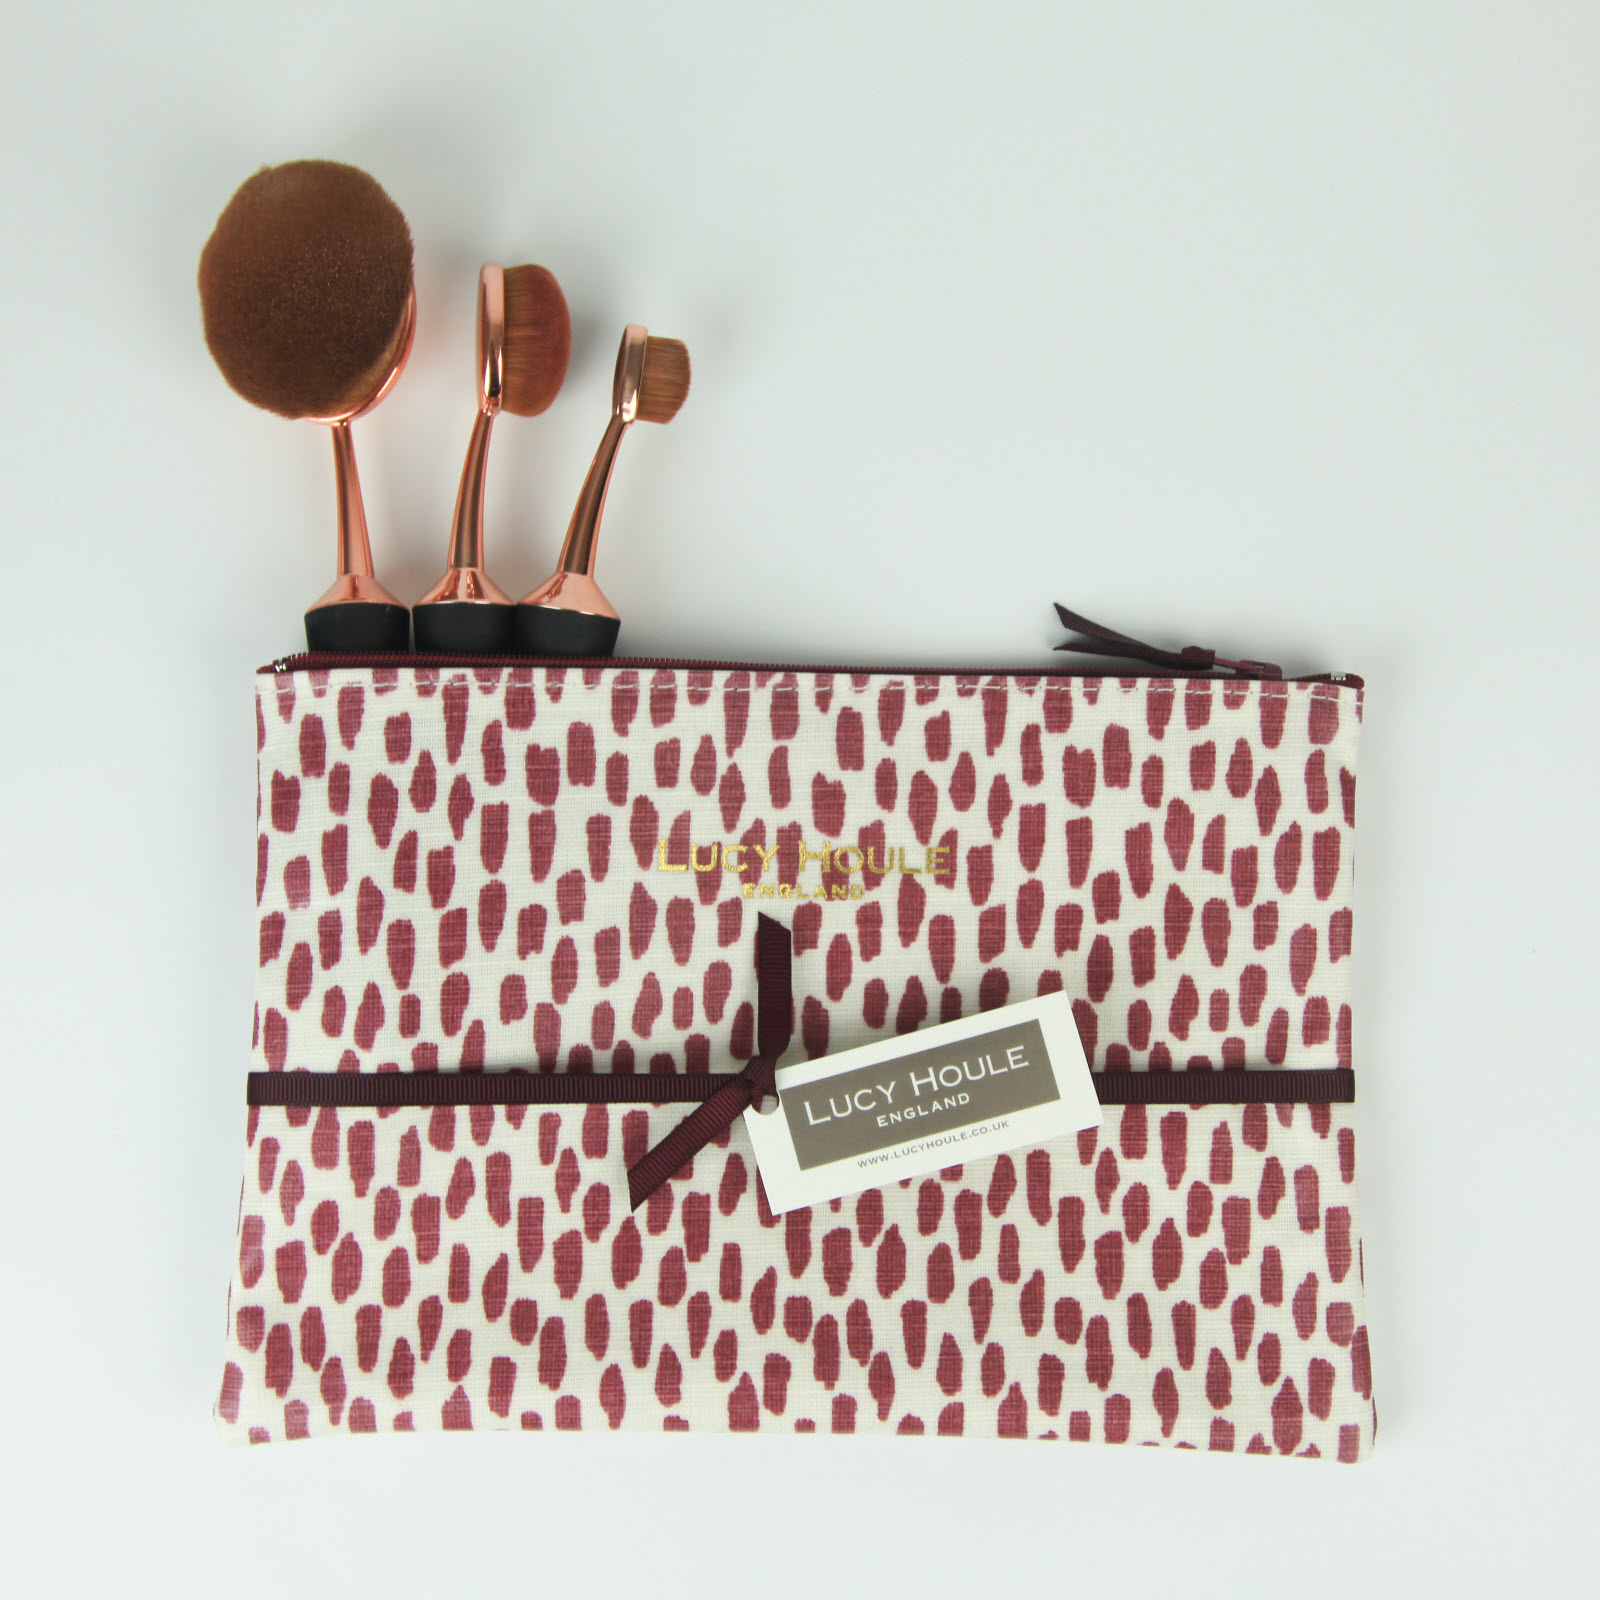 Mulberry Cobblestone Make-Up Bag 'Limited Edition'